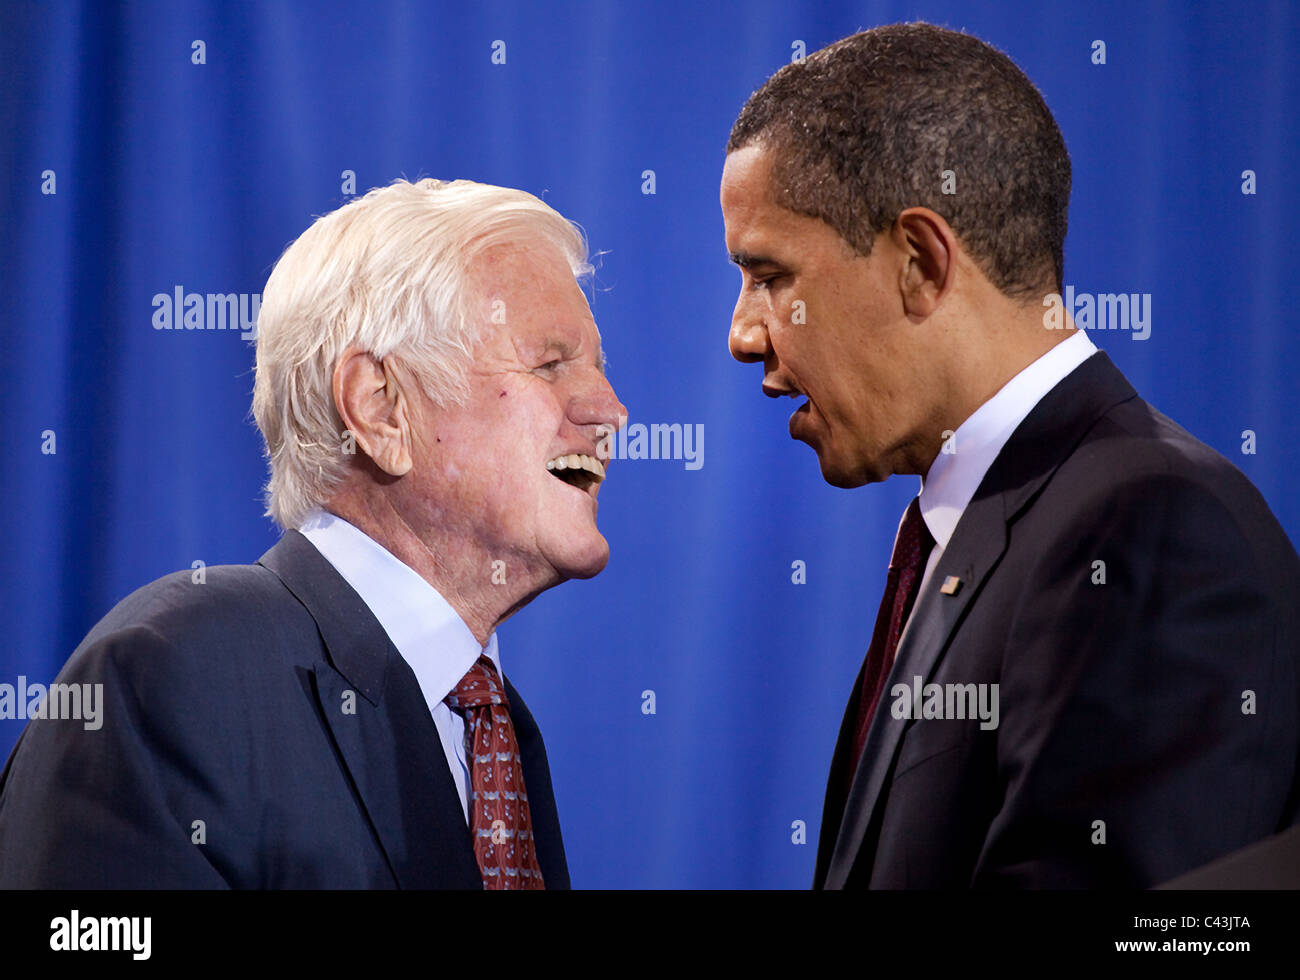 President Barack Obama and Senator Ted Kennedy in Washington, DC - Stock Image